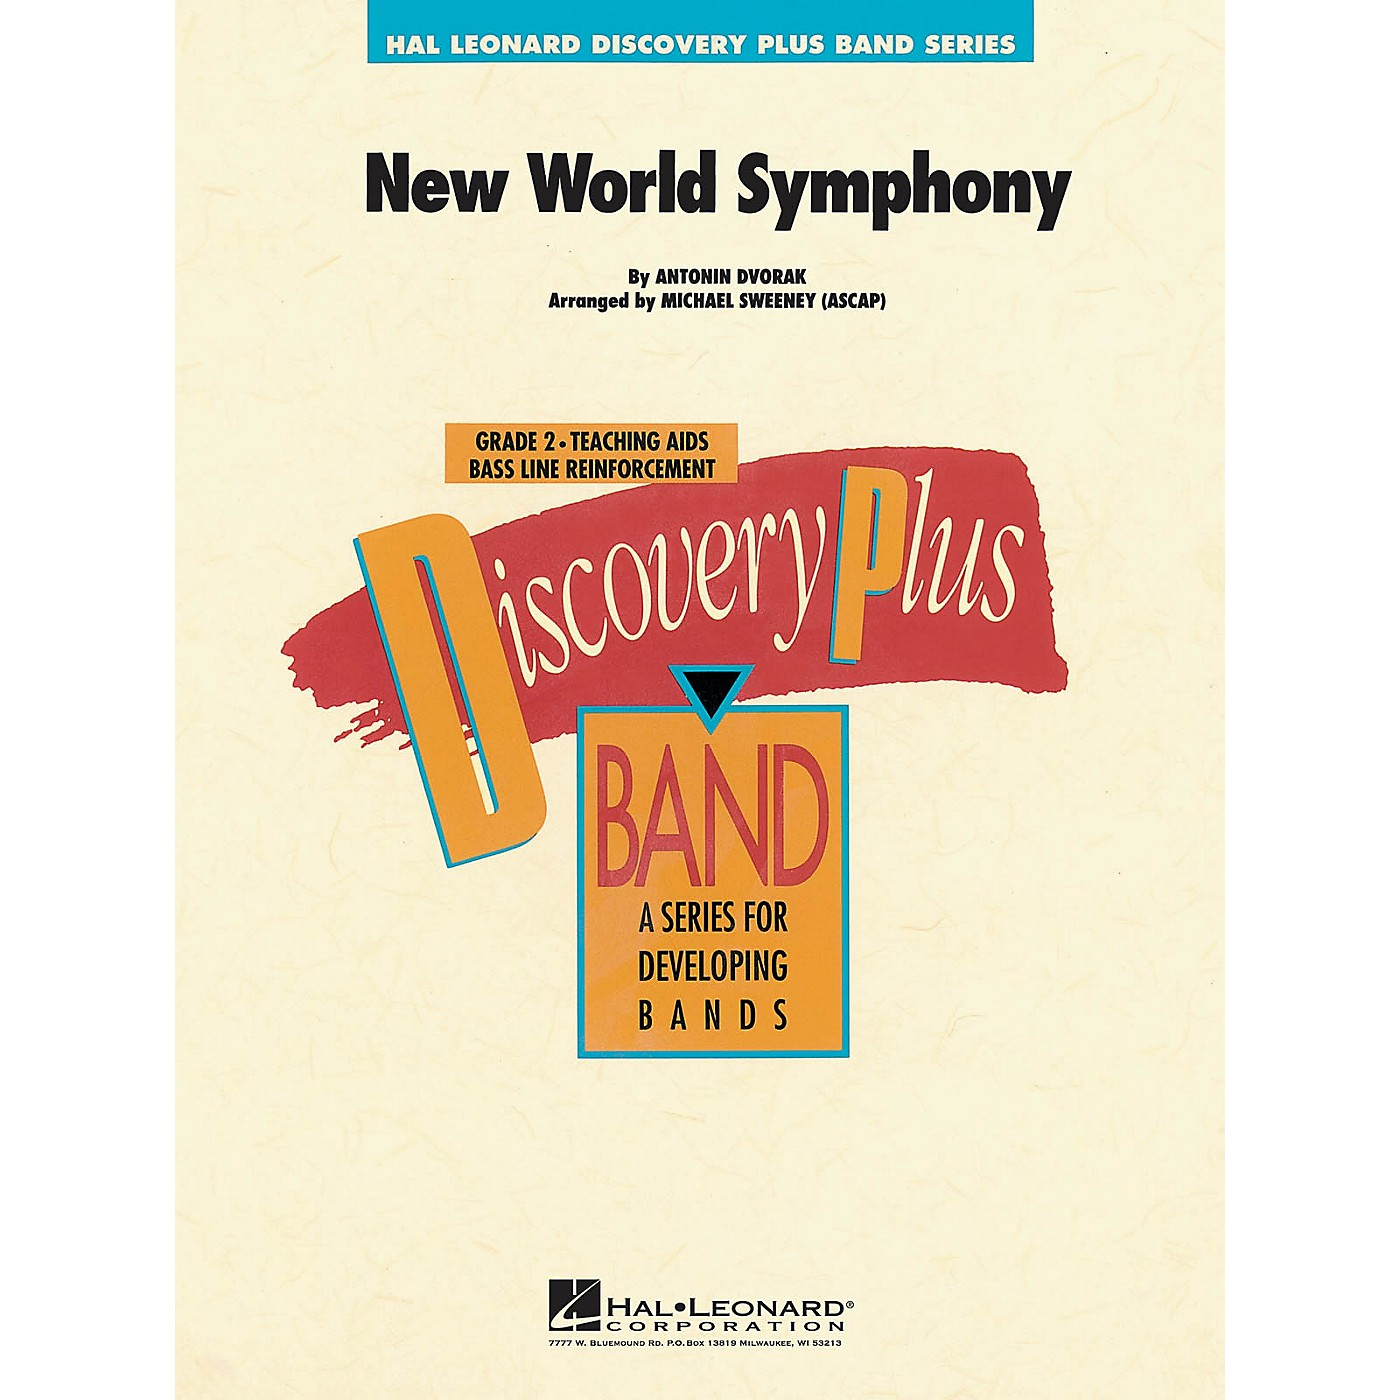 Hal Leonard New World Symphony, Themes From - Discovery Plus Concert Band Series arranged by Michael Sweeney thumbnail